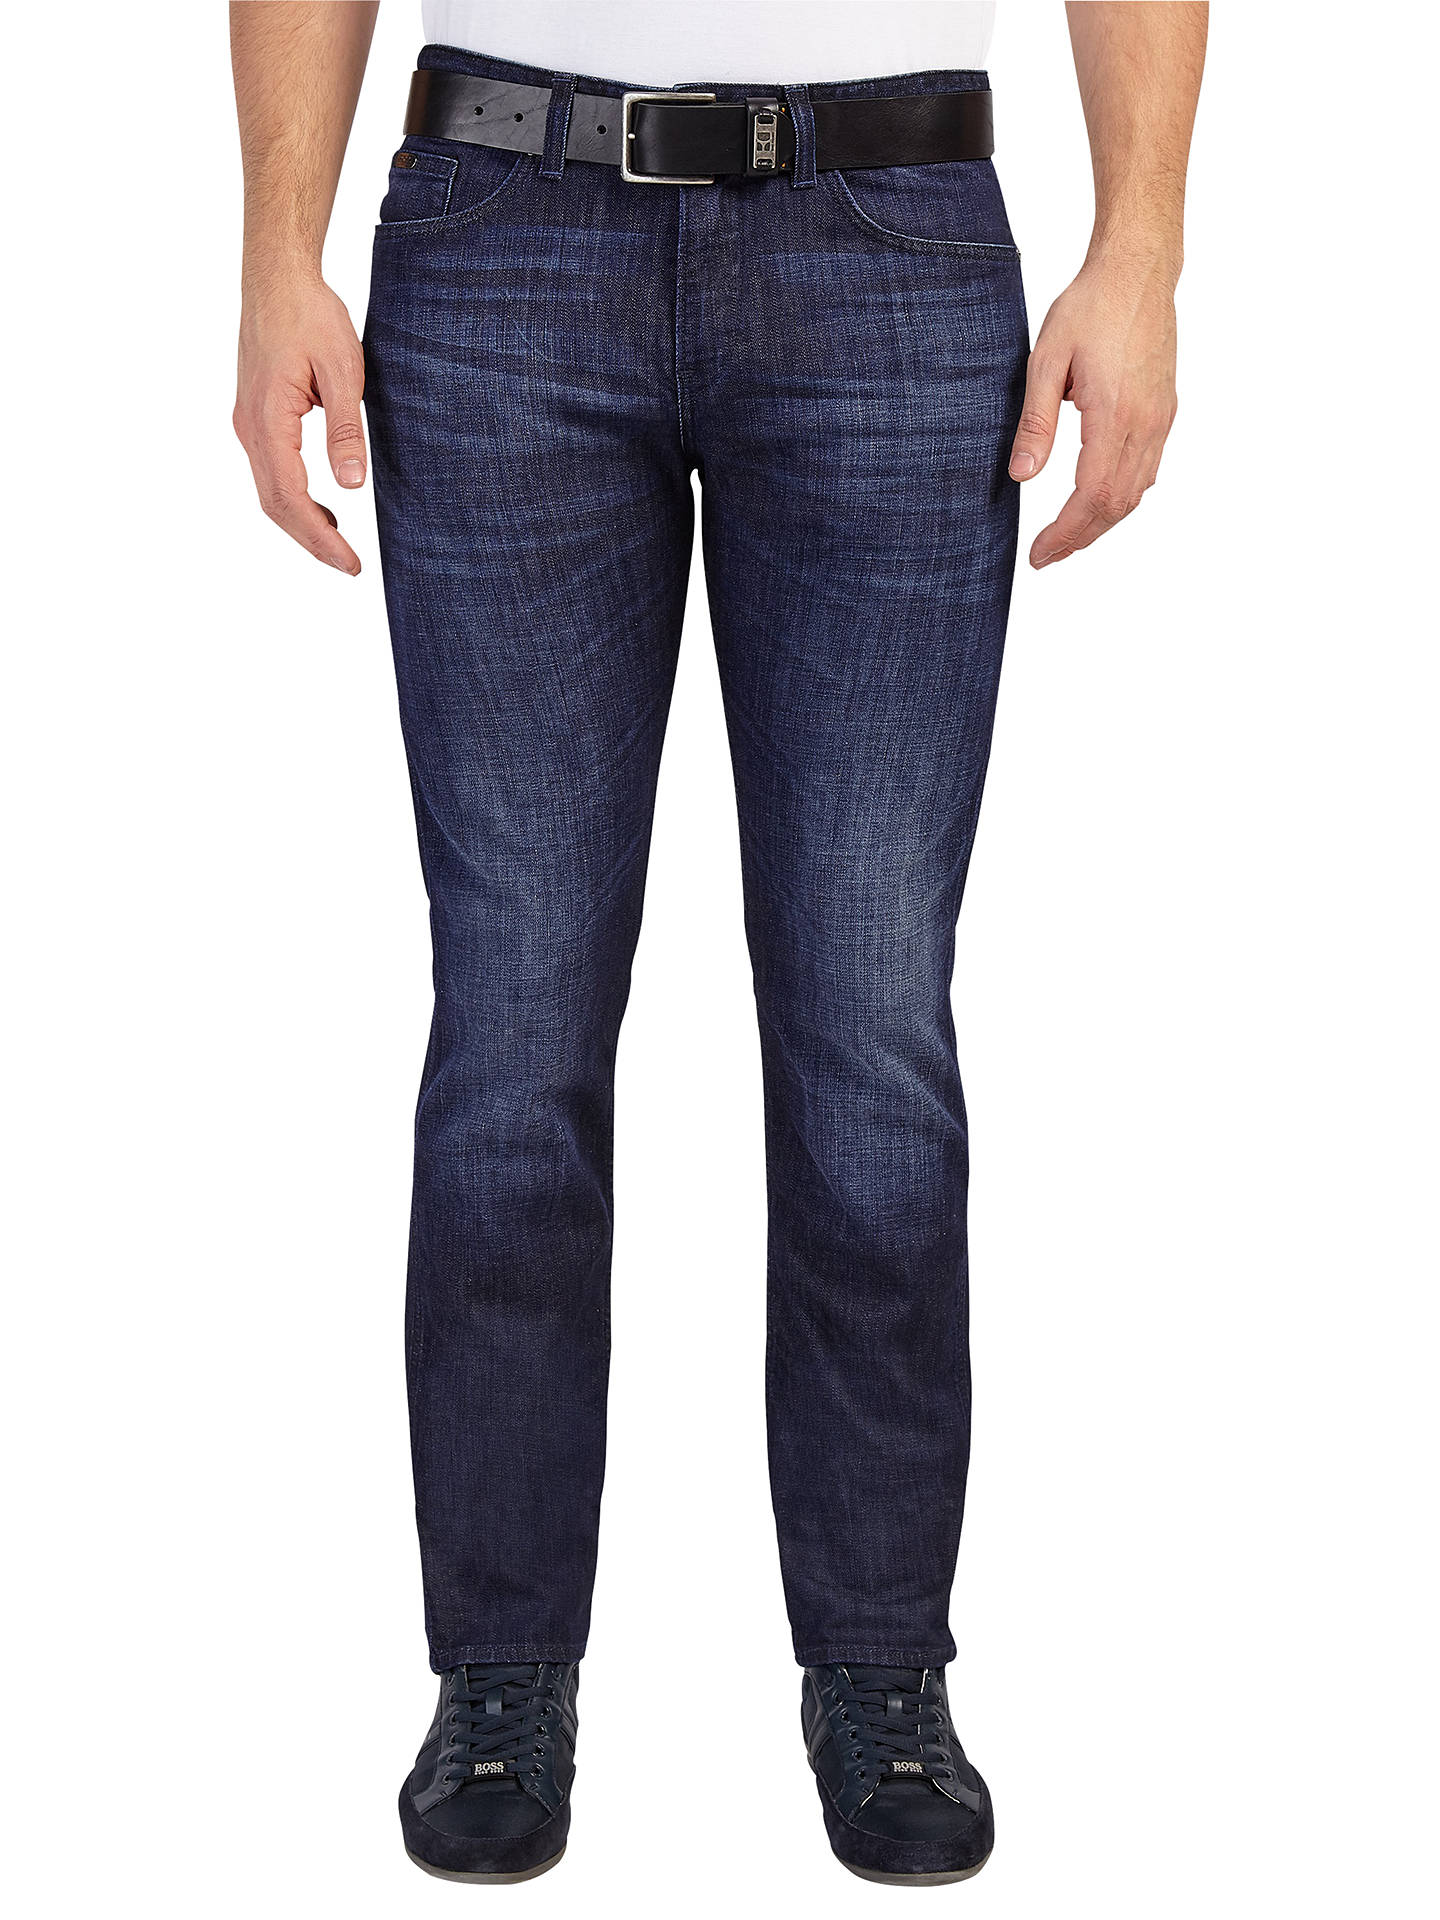 unequal in performance search for authentic official site BOSS Green Slim Fit C-Delaware Jeans, Medium Blue at John ...